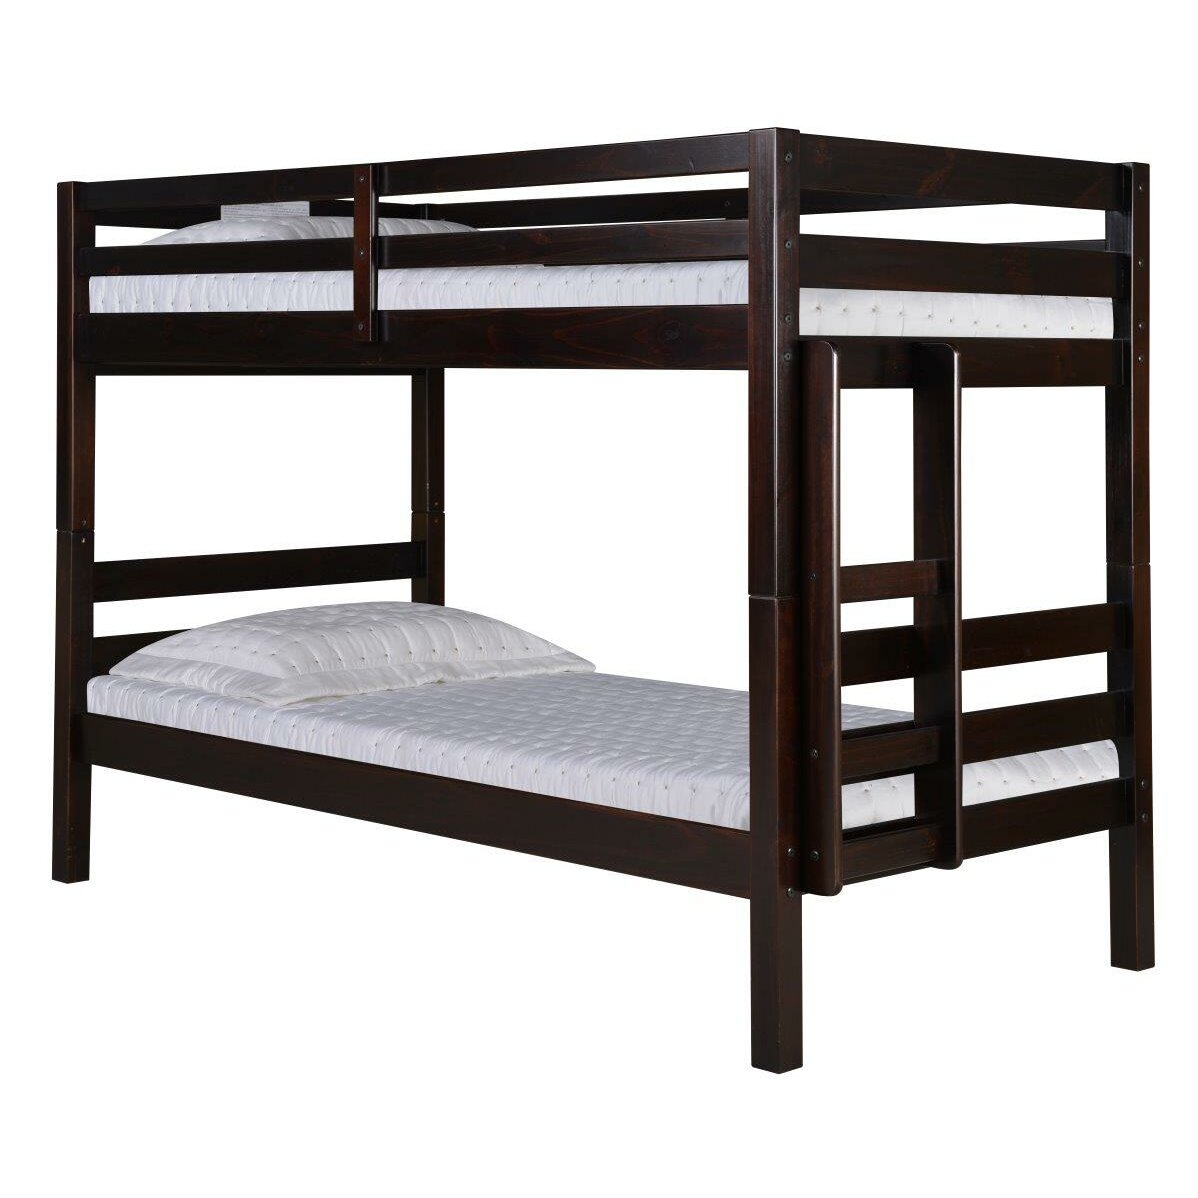 Pics Photos - Staircase Bunk Bed Pictures